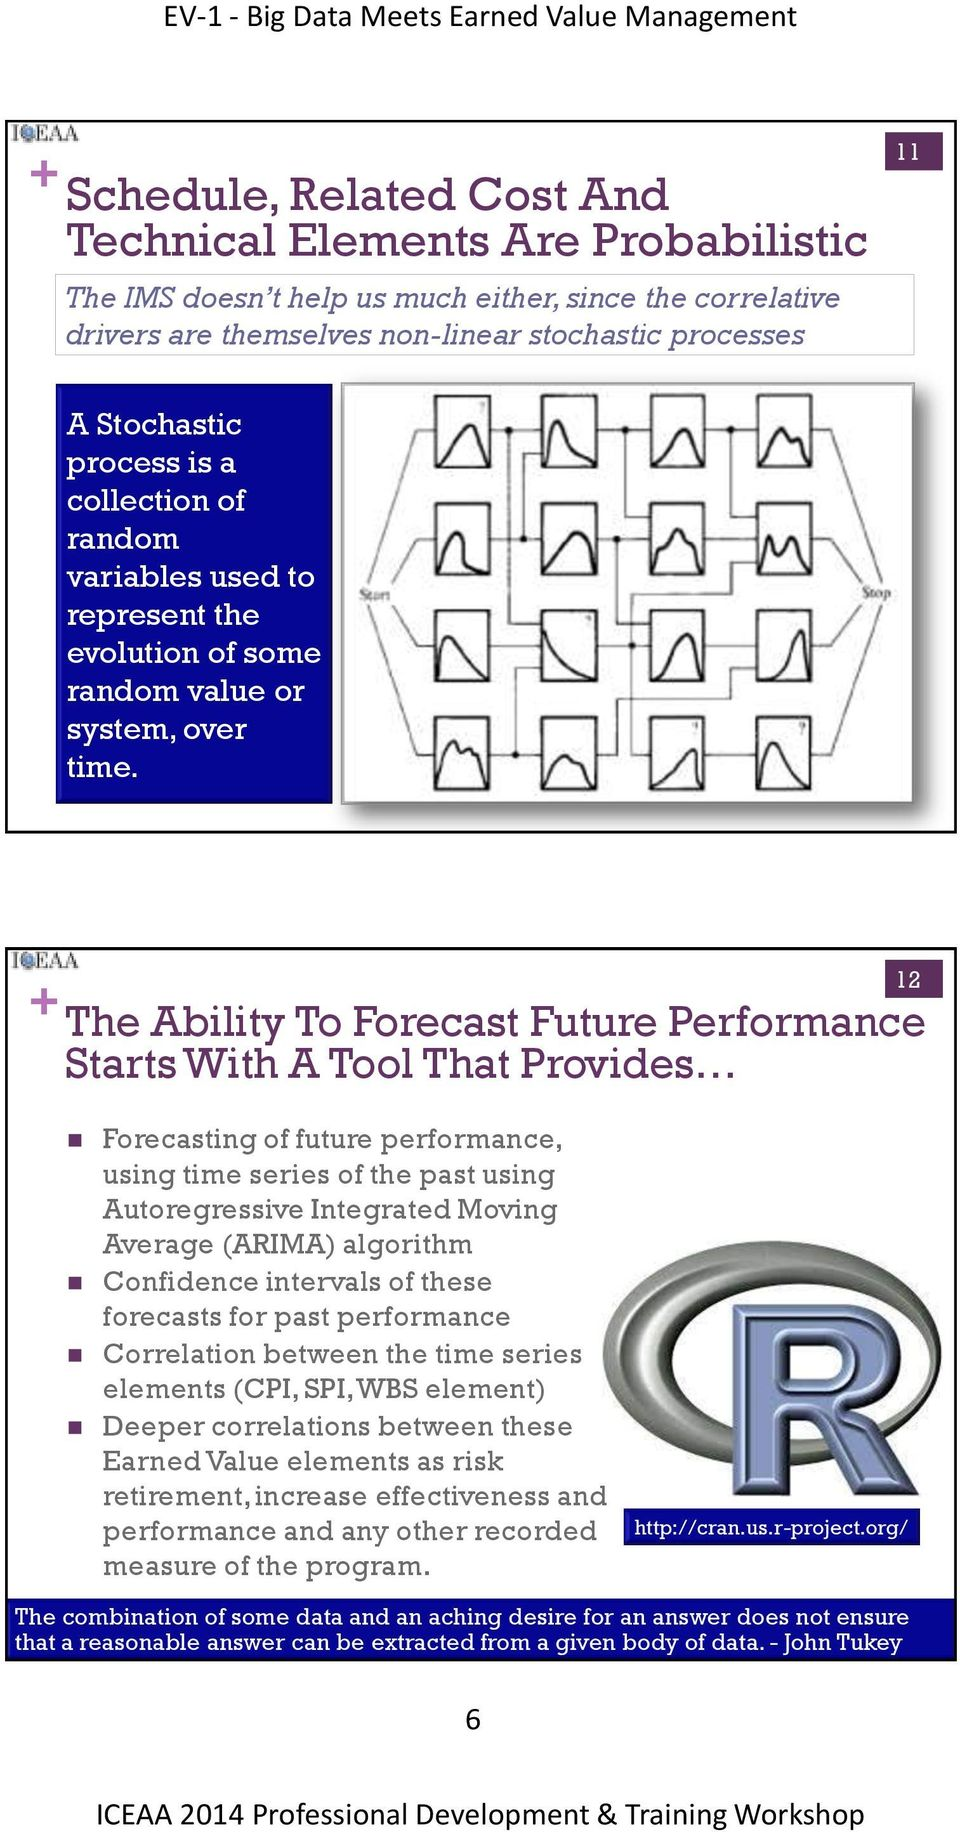 + The Ability To Forecast Future Performance Starts With A Tool That Provides 12 Forecasting of future performance, using time series of the past using Autoregressive Integrated Moving Average